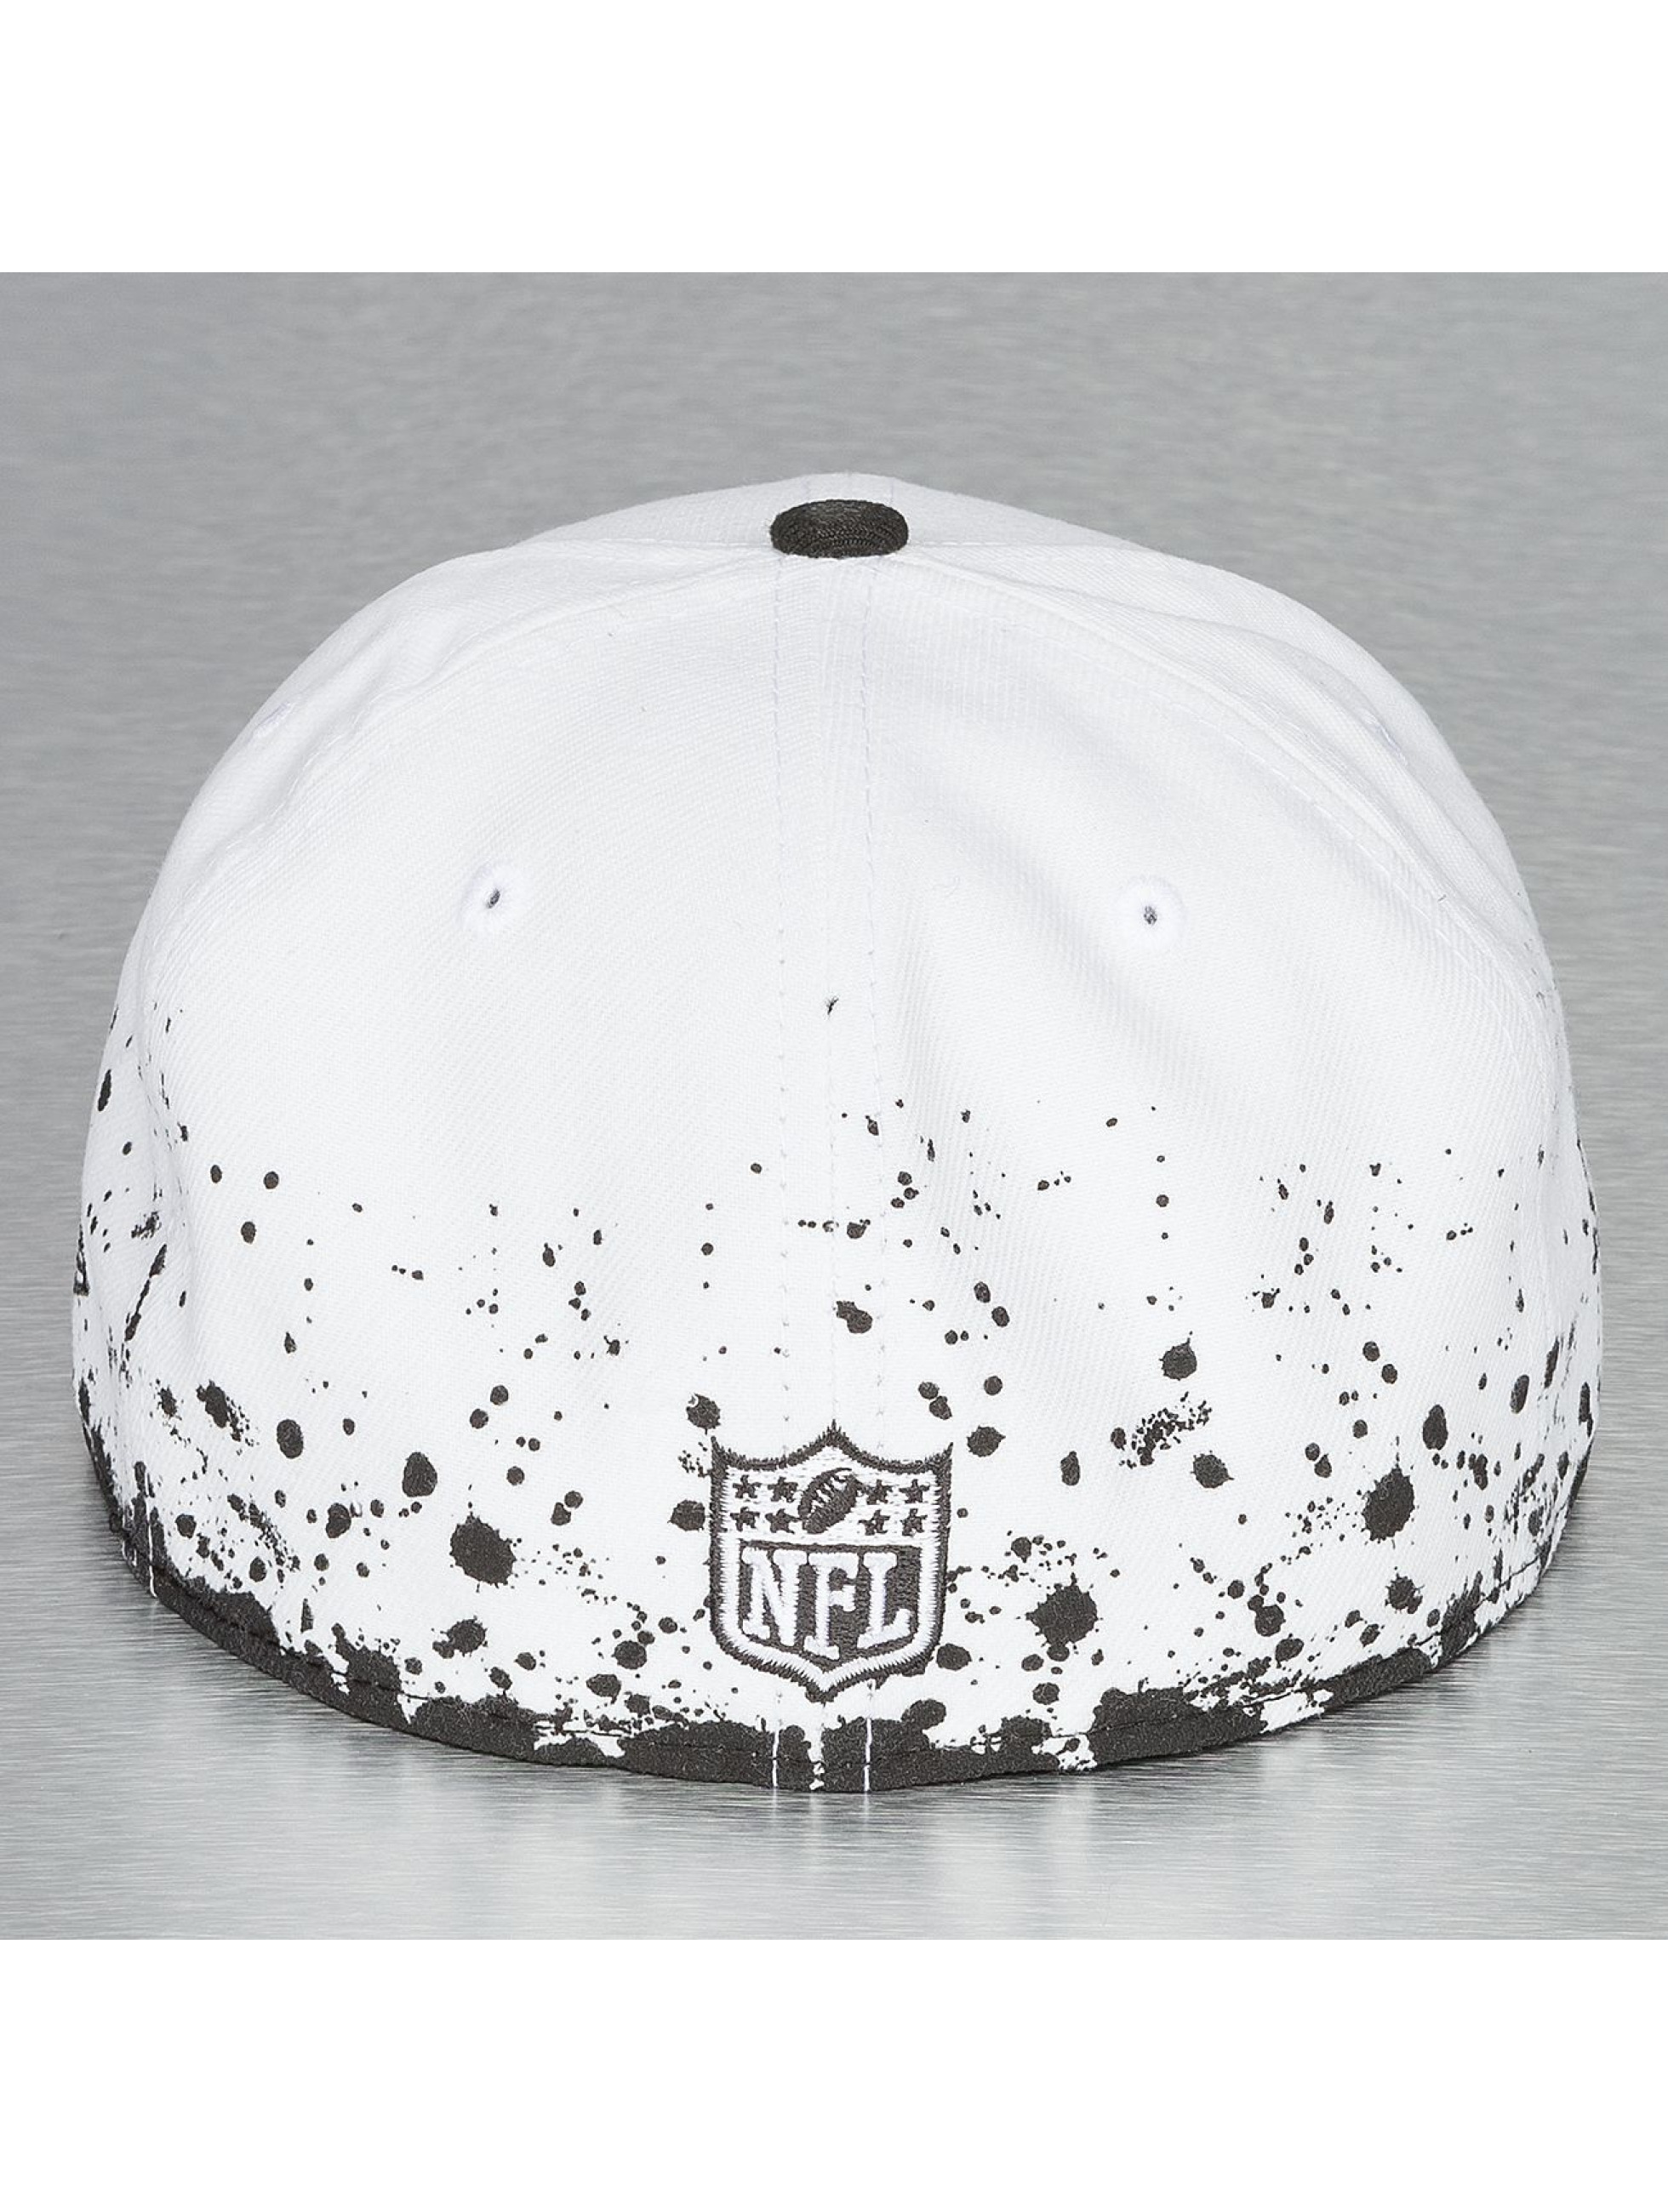 New Era Casquette Fitted Panel Splatter Oakland Raiders 59Fifty blanc